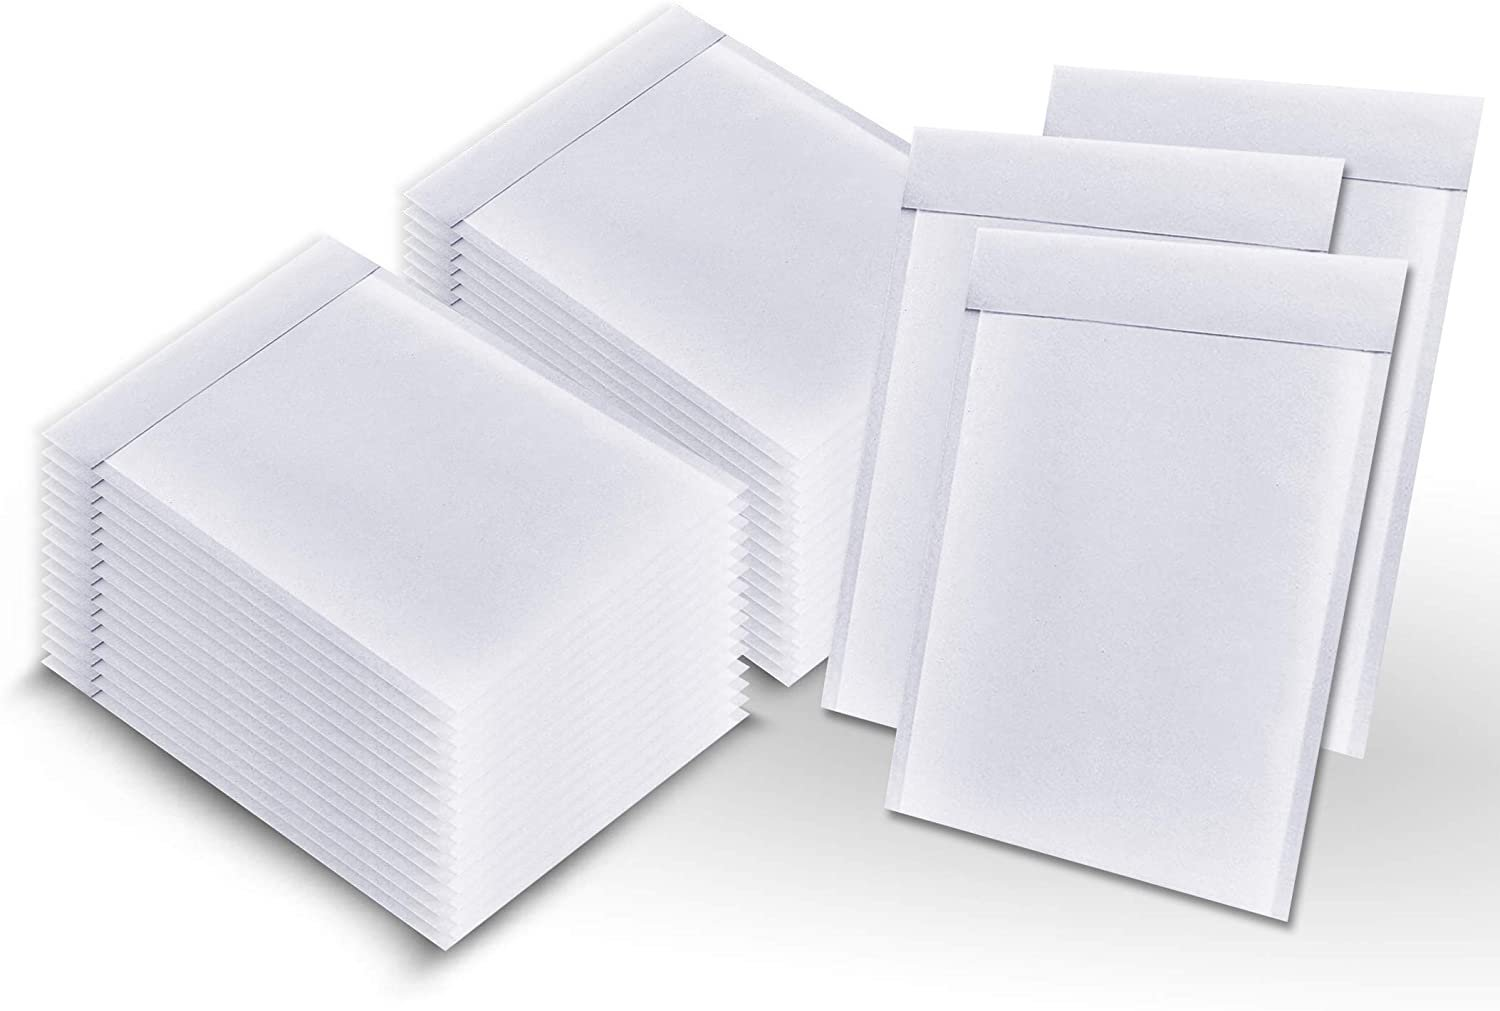 100 6x9 j White PoLY MAILERS ENVELOPES BAGS 6 x 9